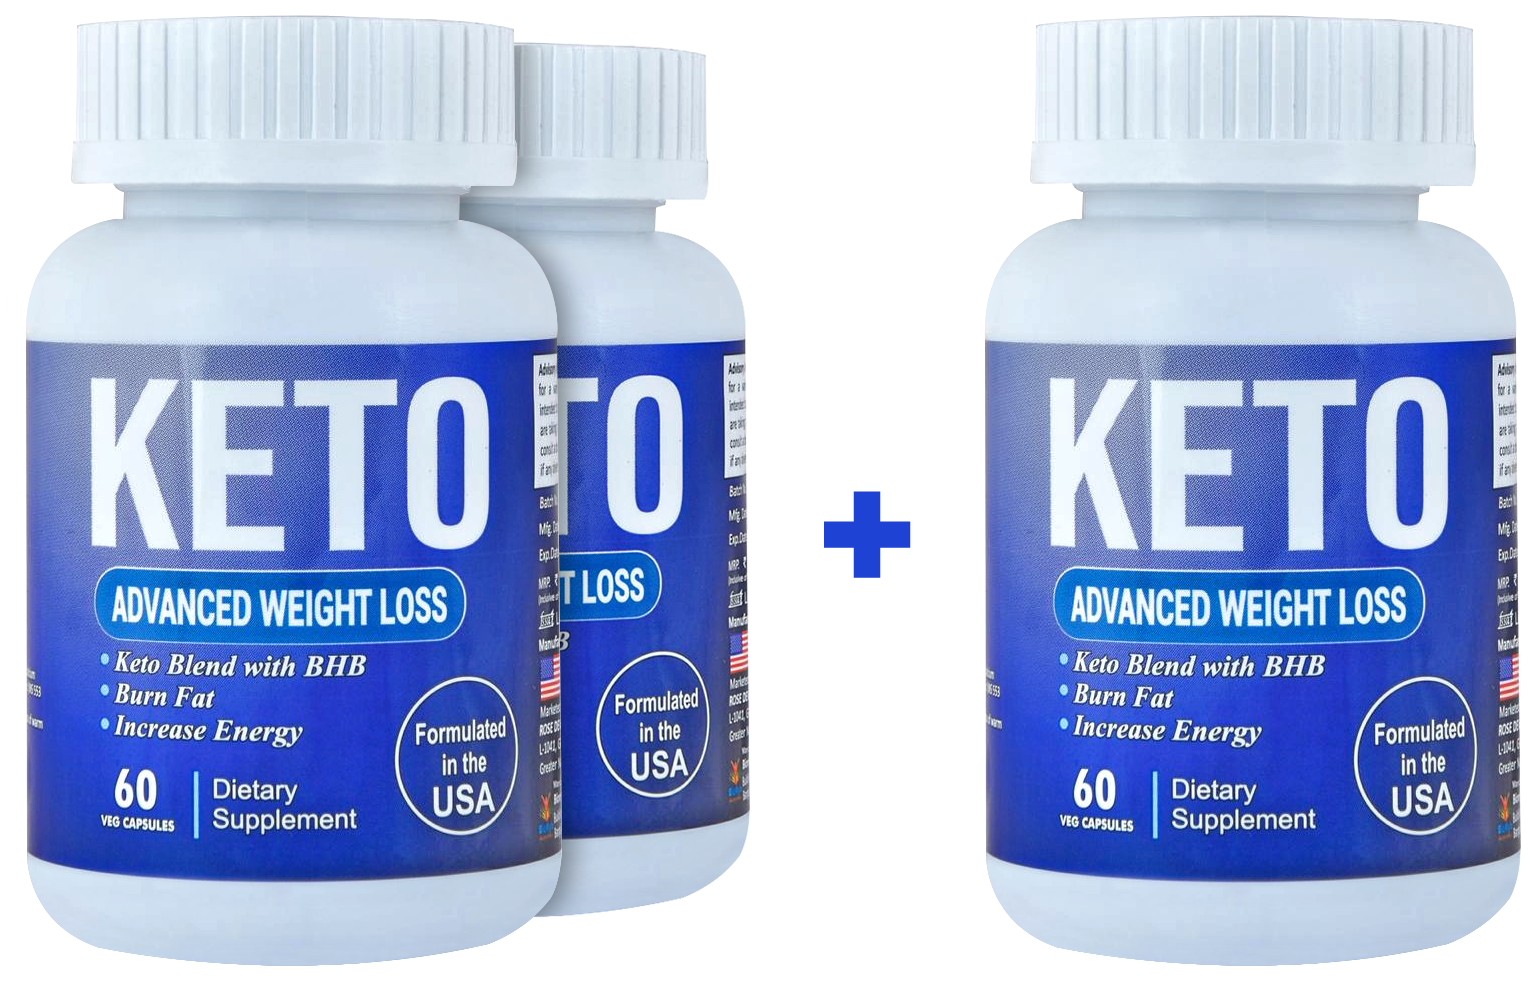 Keto Advanced Weight Loss Supplement Natural Fat Burner Green Tea, Garcinia Cambogia, Green Coffee, Apple Cider Vinegar (180 Capsules) - Pack of 3